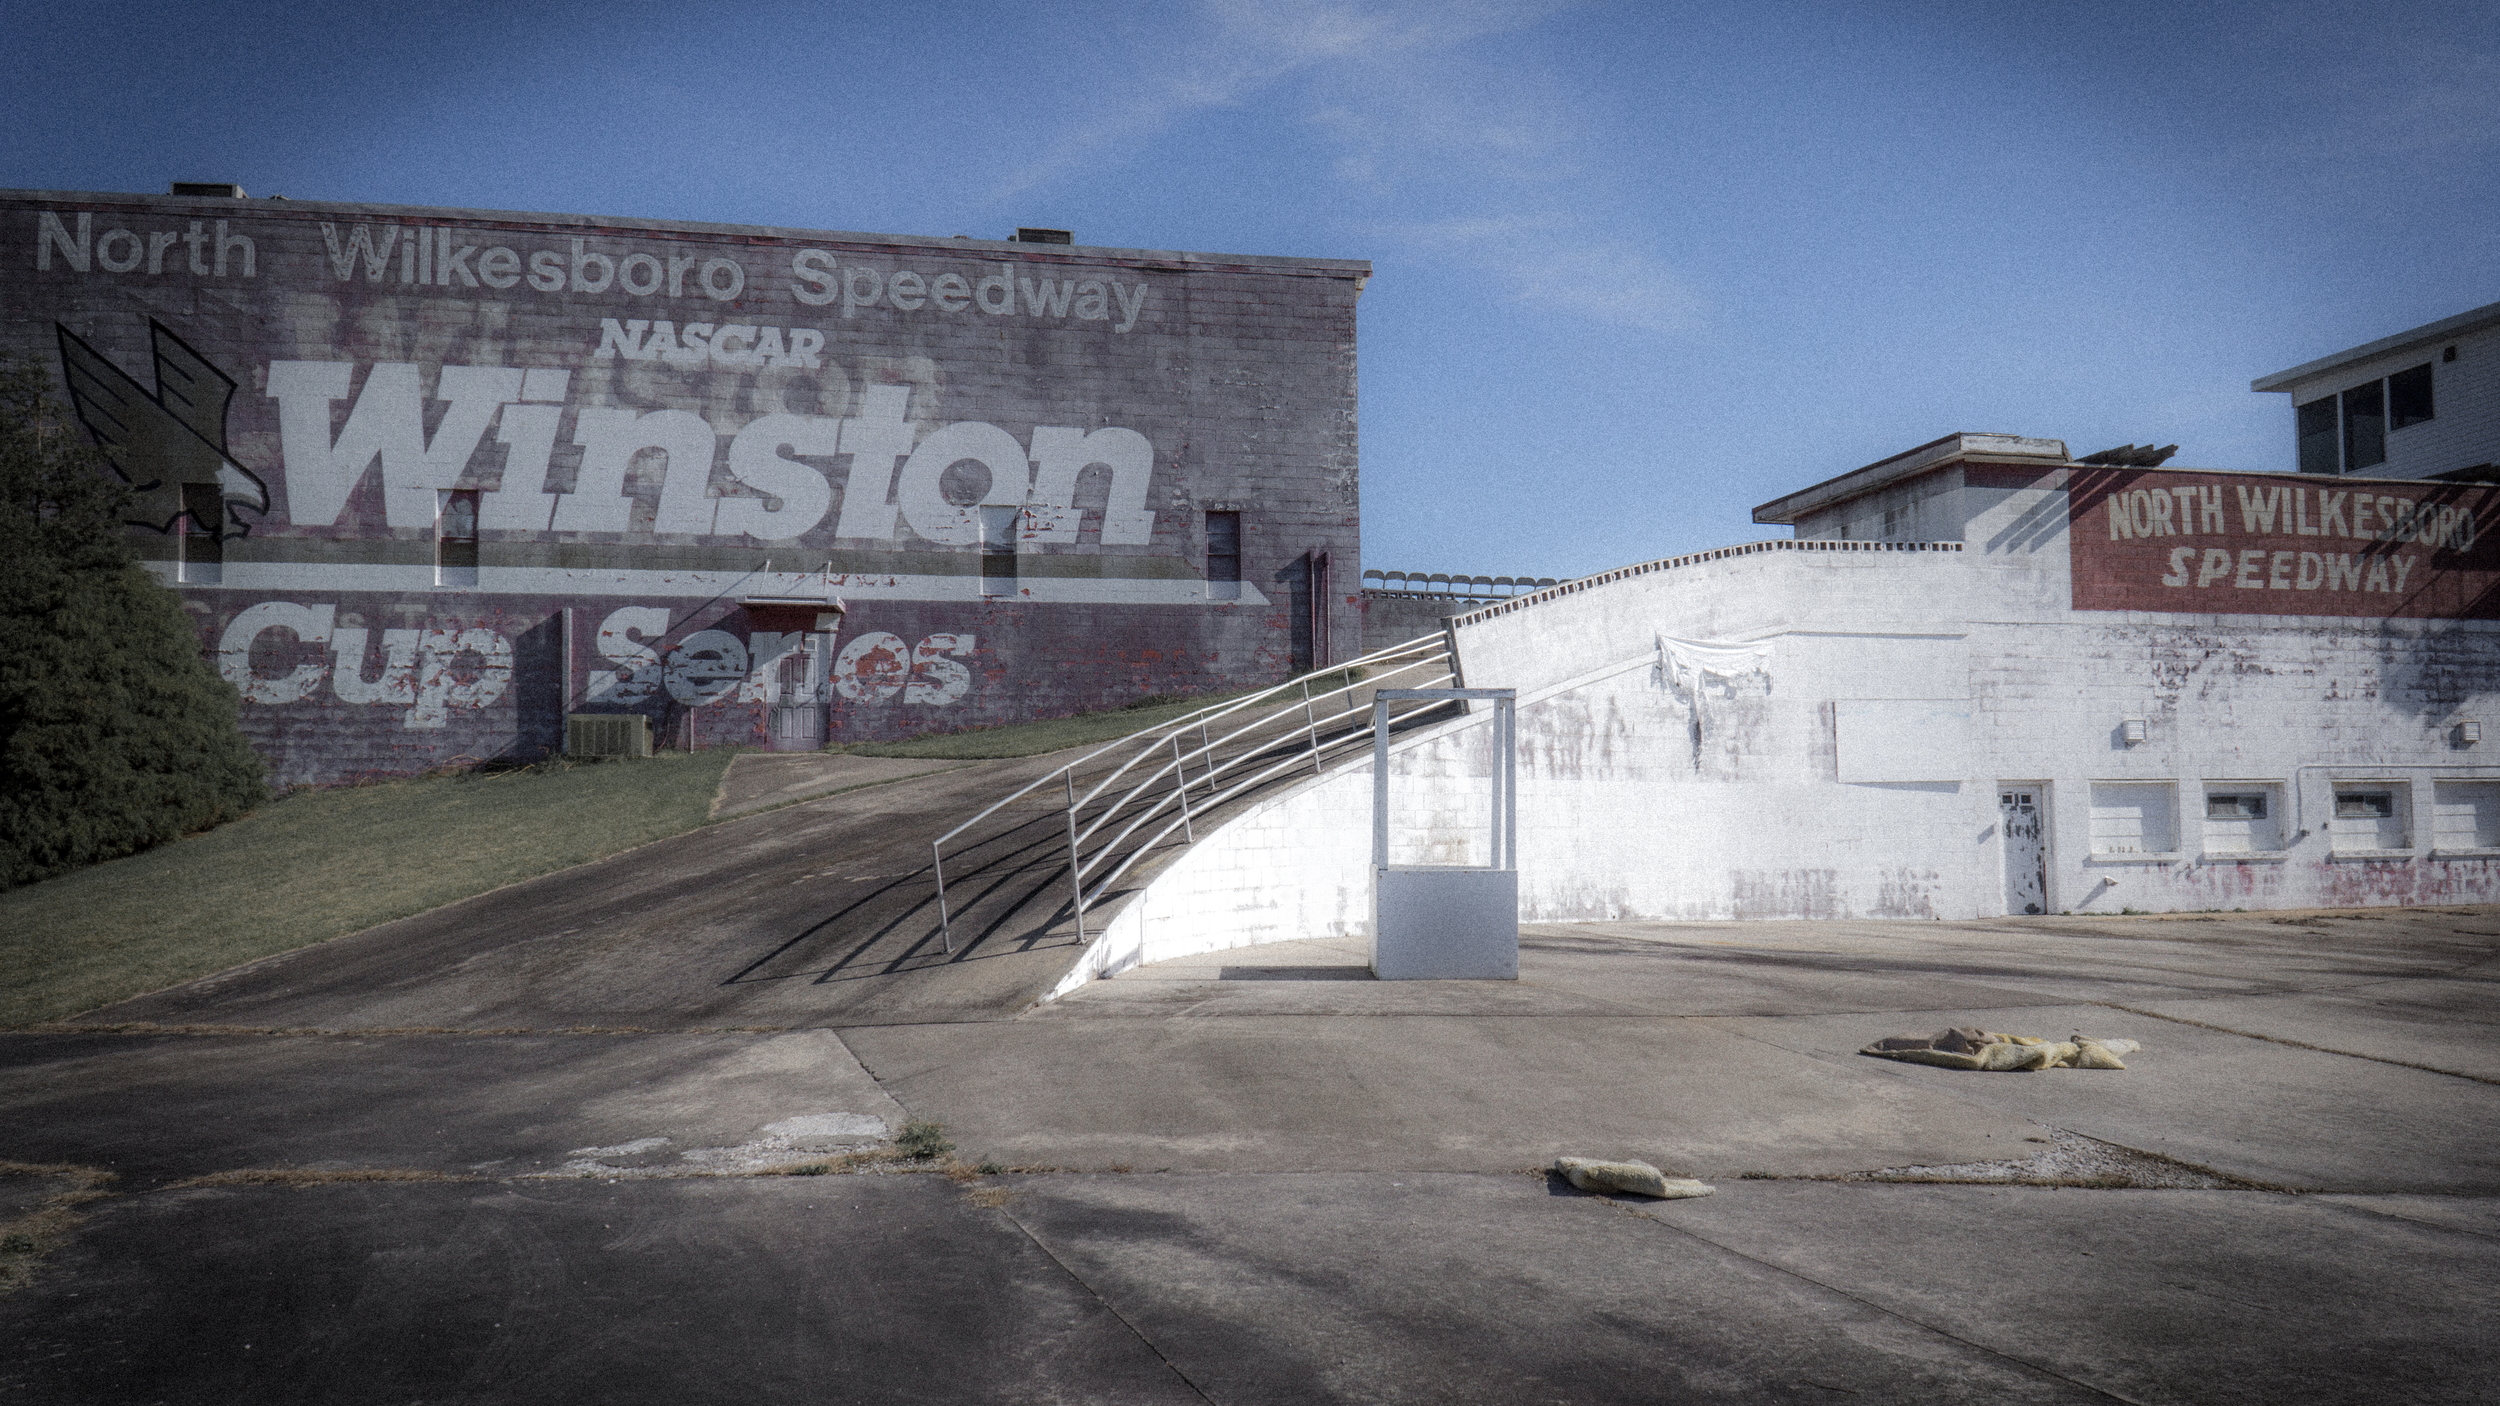 Ghost of Speedways Past